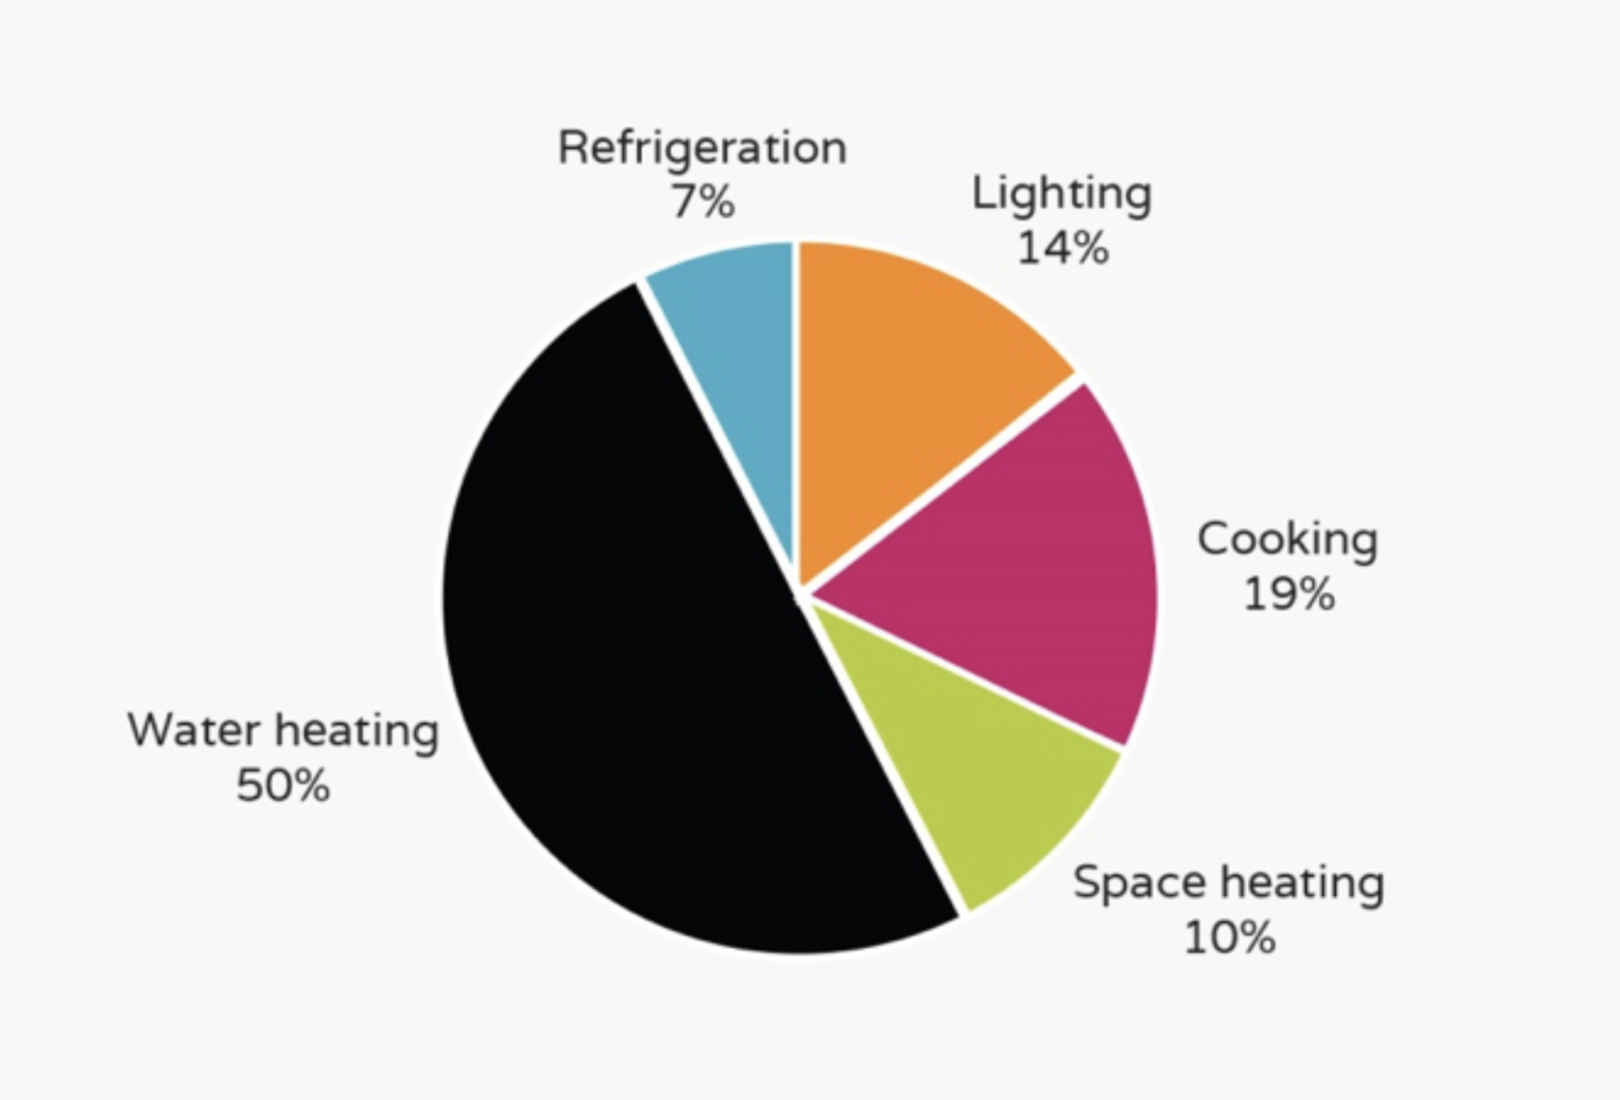 Frequently Asked Questions Saving Electricity With The City Of Wiring Code Sans 10142 Pdf A Breakdown Usage Which Is Indicative Typical Home But Note That All Homes Are Different